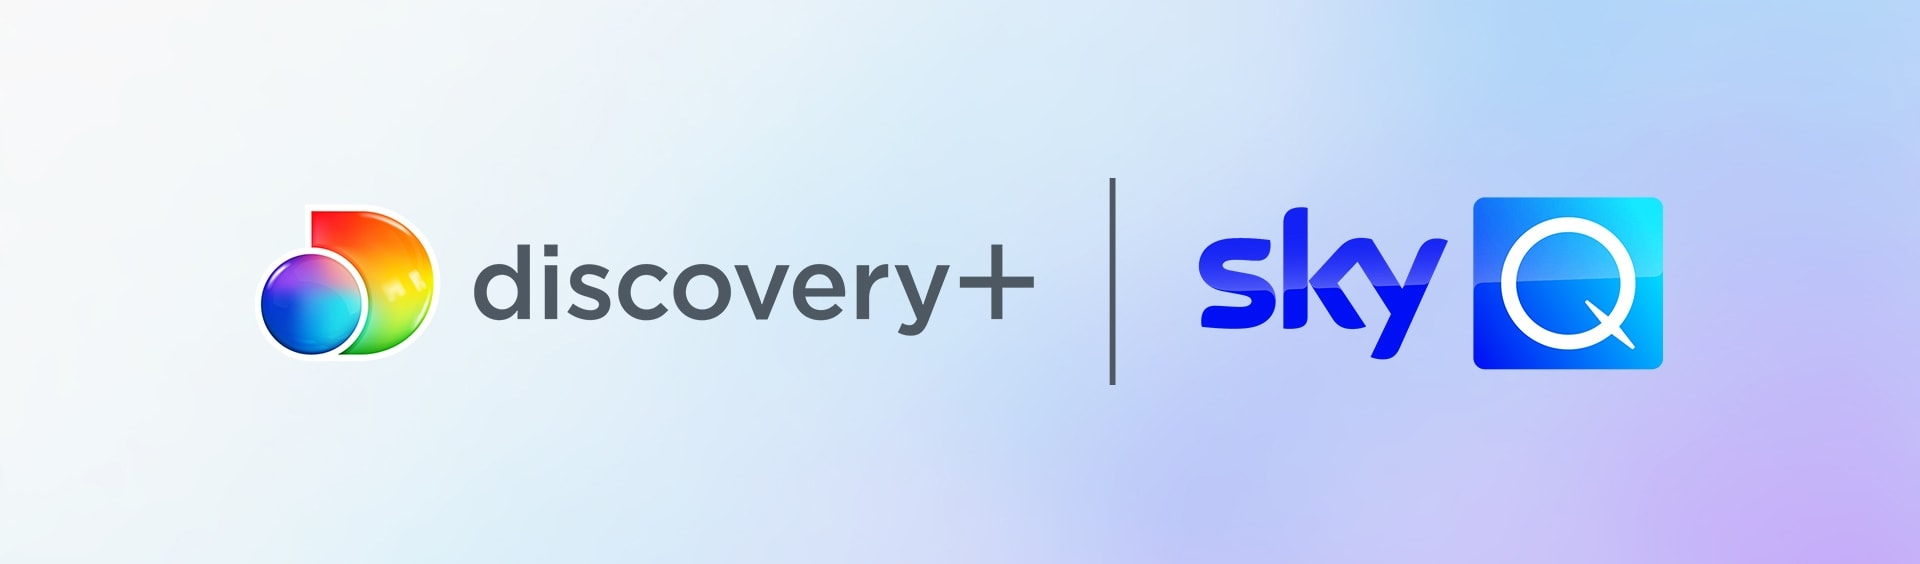 discovery+ logo banner image